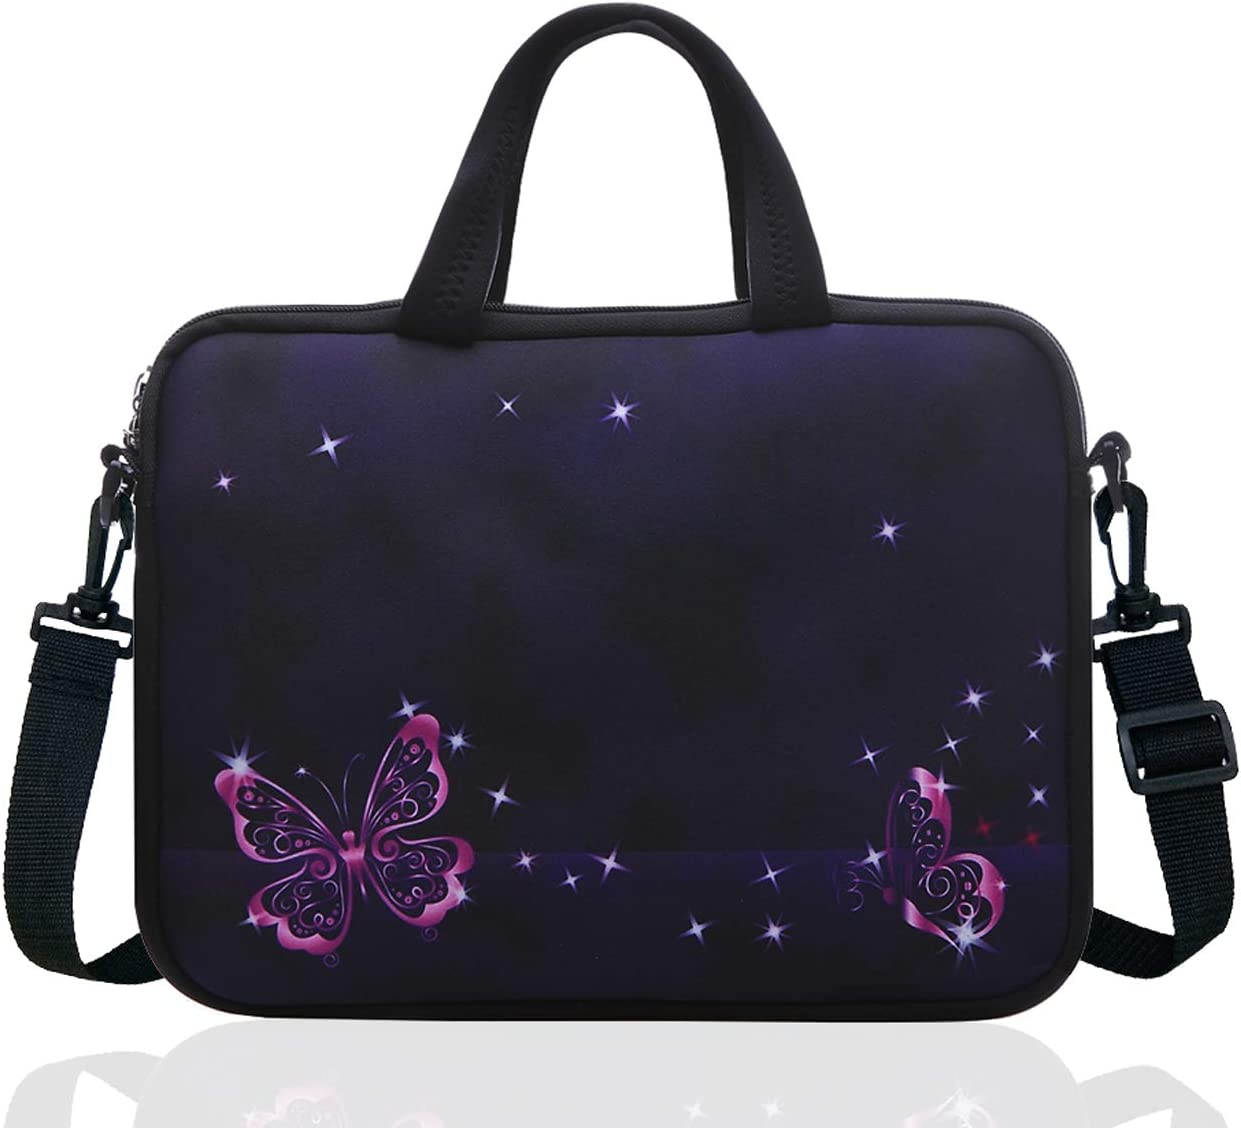 14 Inch Neoprene Laptop Sleeve Case Bag with shoulder strap For 14